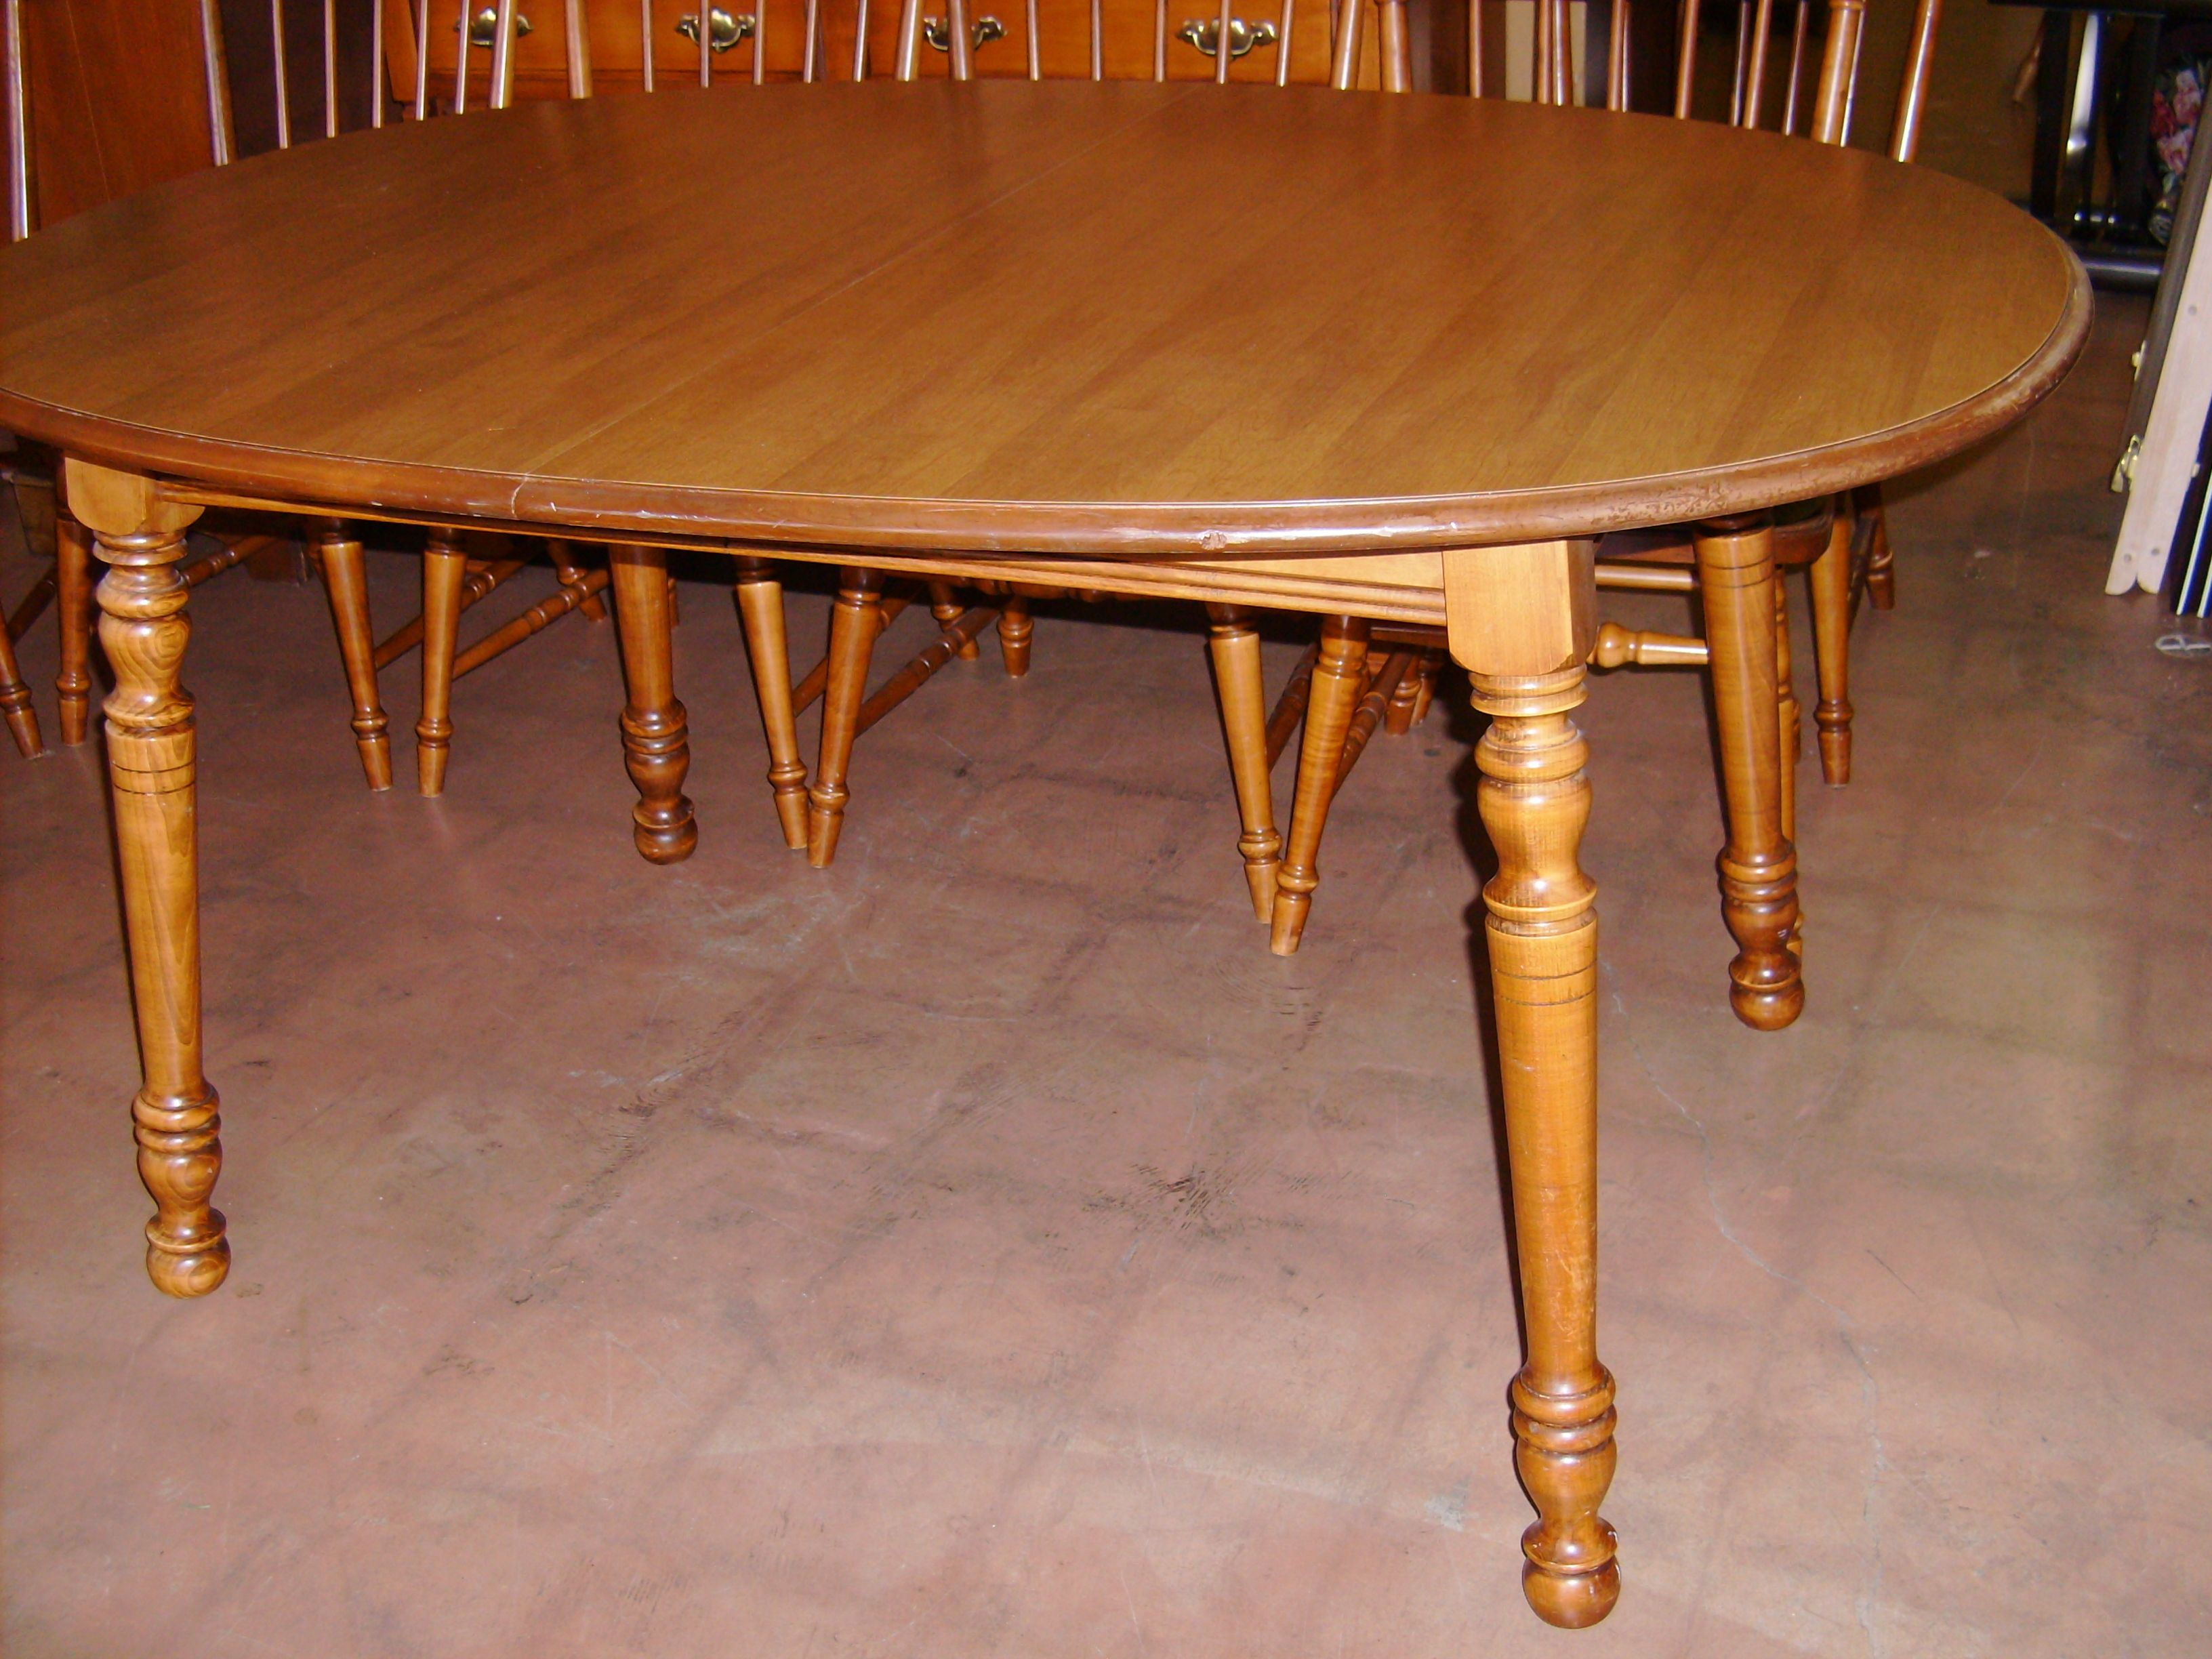 Maple Kitchen Table Kids Toys Tell City Dining Or Gone To A Good Home Furniture Vintage